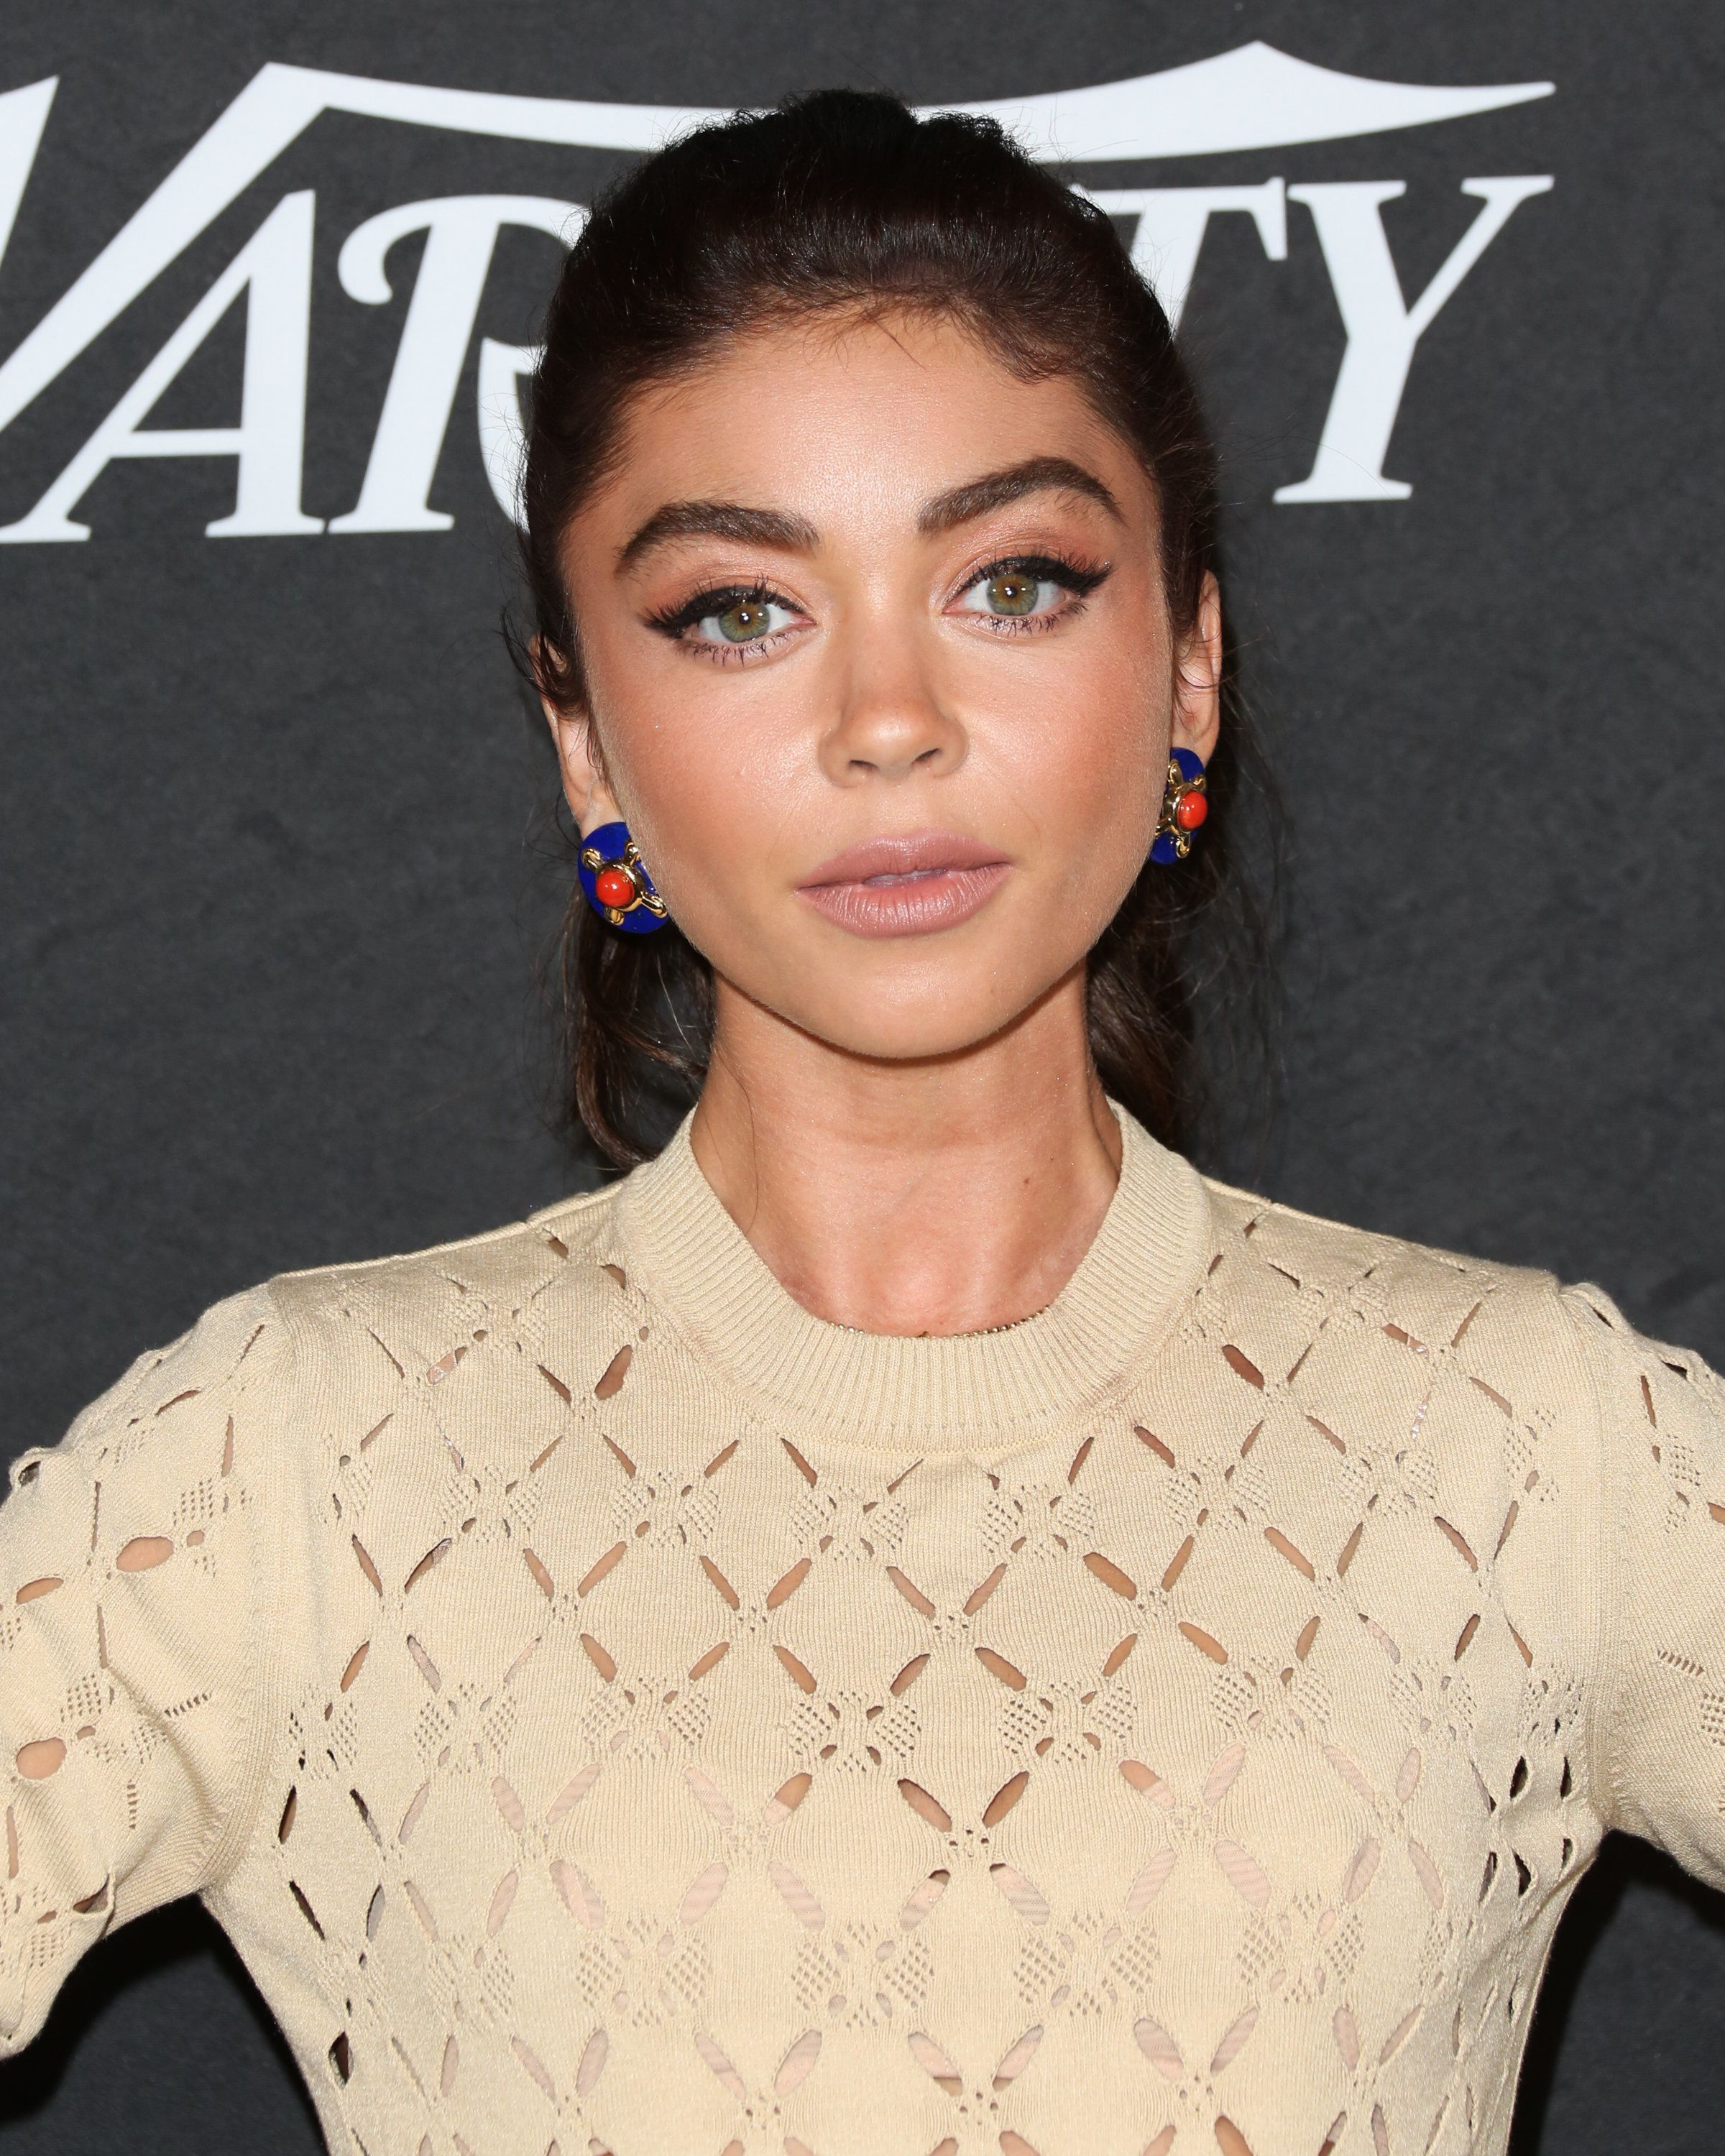 Sarah Hyland Suggests She Was Assaulted In Powerful Twitter